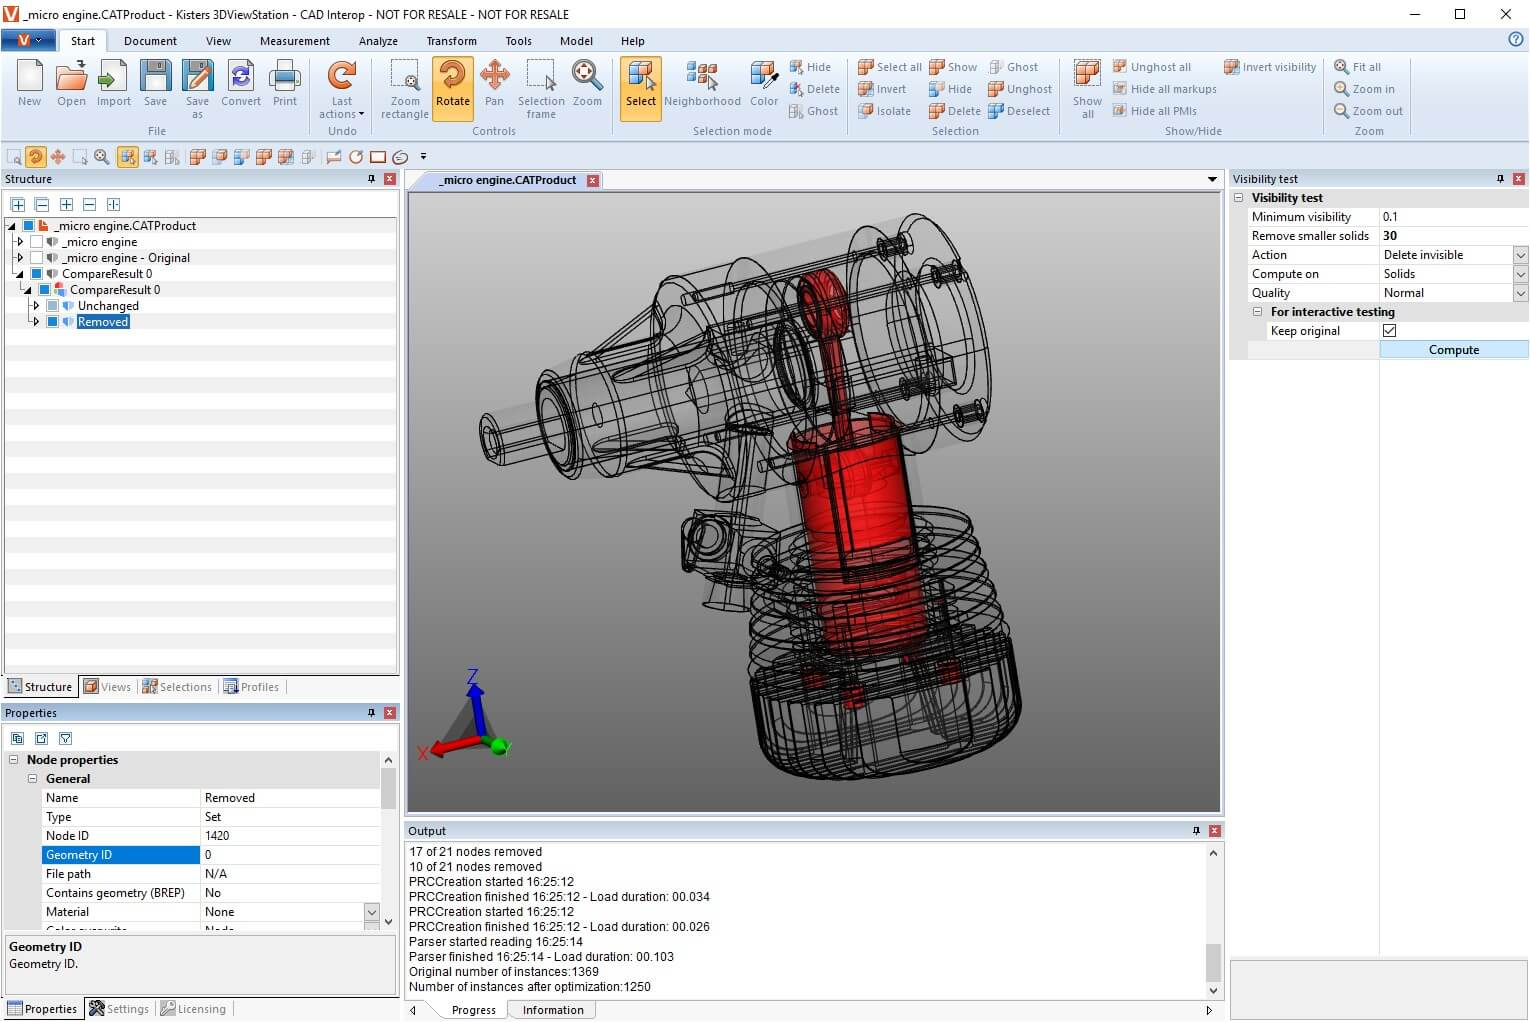 CAD Interop - 2D & 3D CAD analysis for Project Review